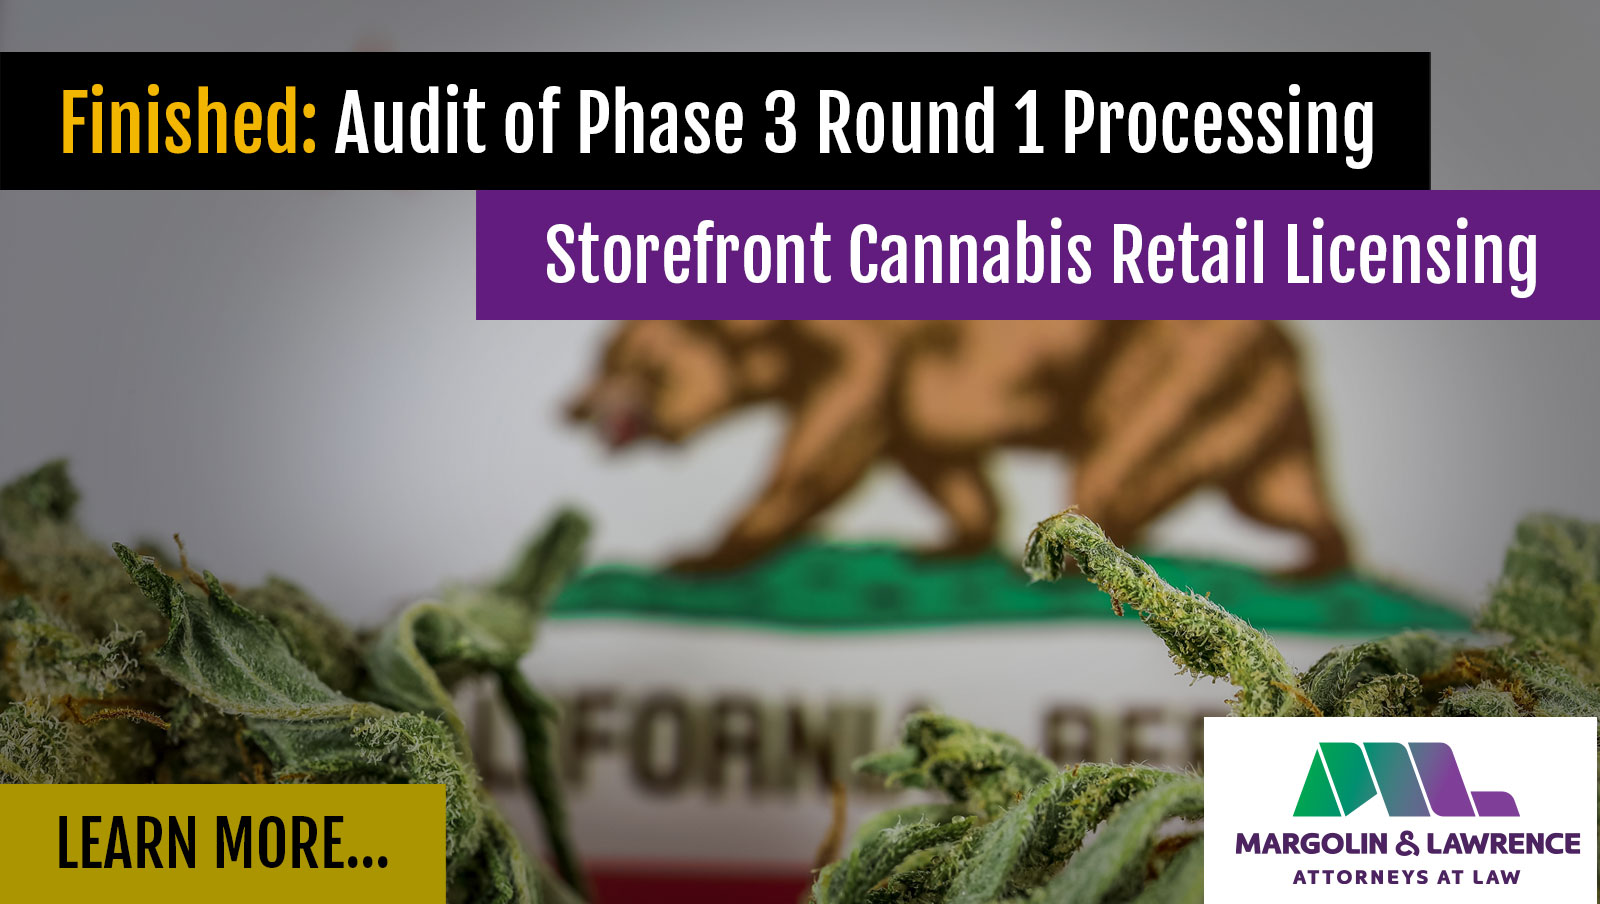 Los Angeles Finishes Audit of Phase 3 Round 1 Processing (Cannabis Retail)